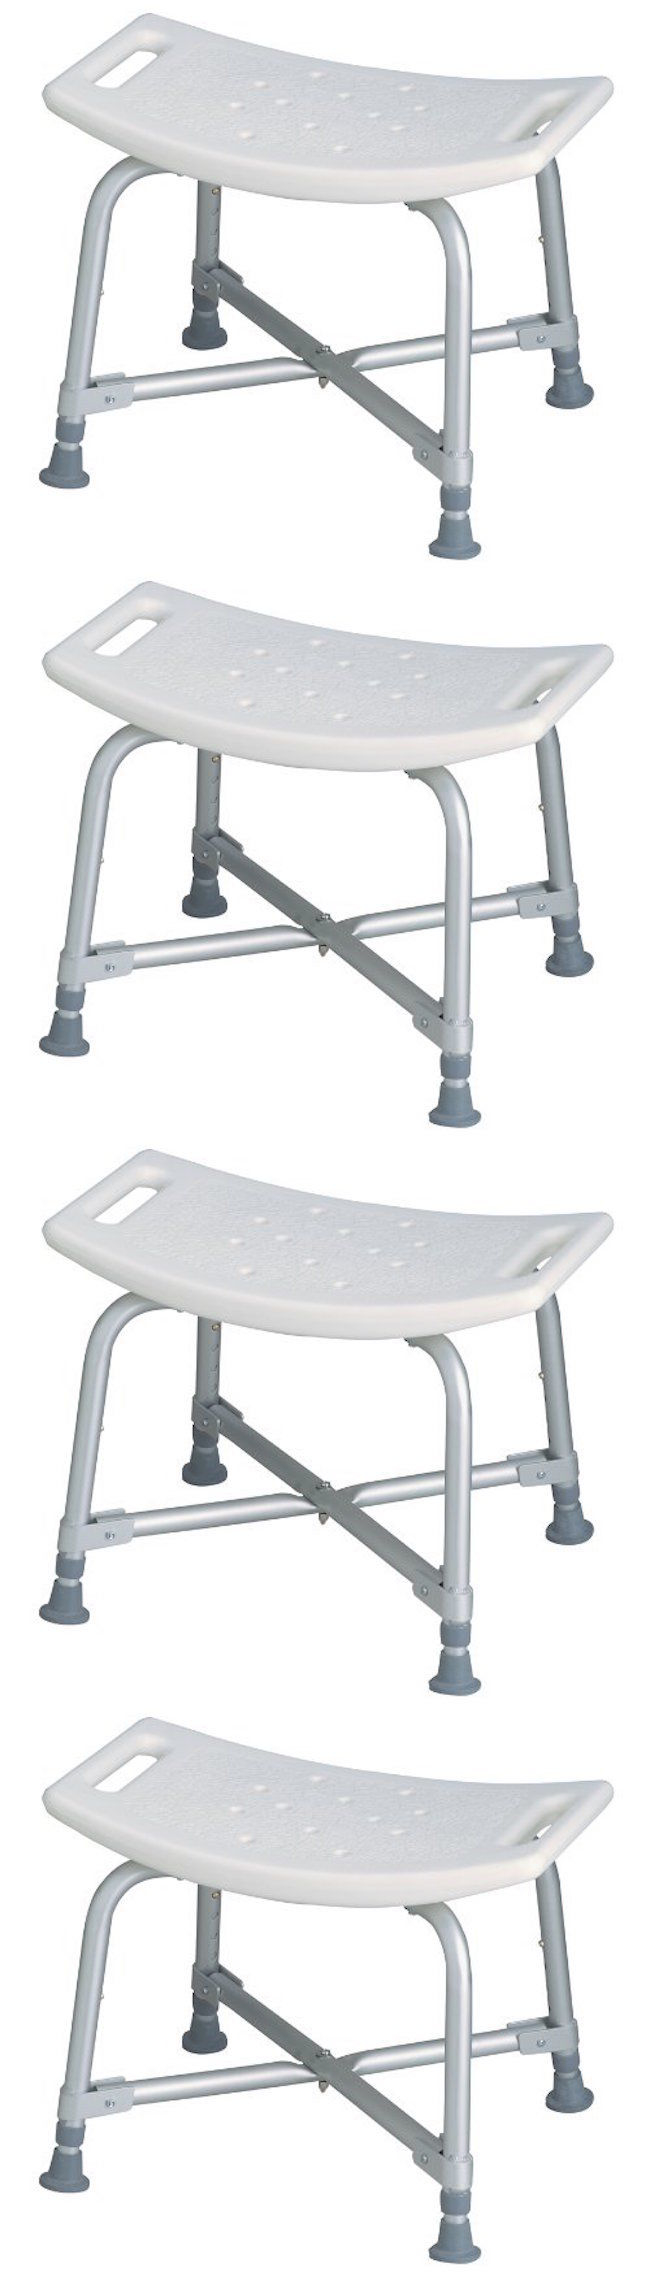 Other Accessibility Fixtures: Bariatric Shower Chair Bench Seat ...